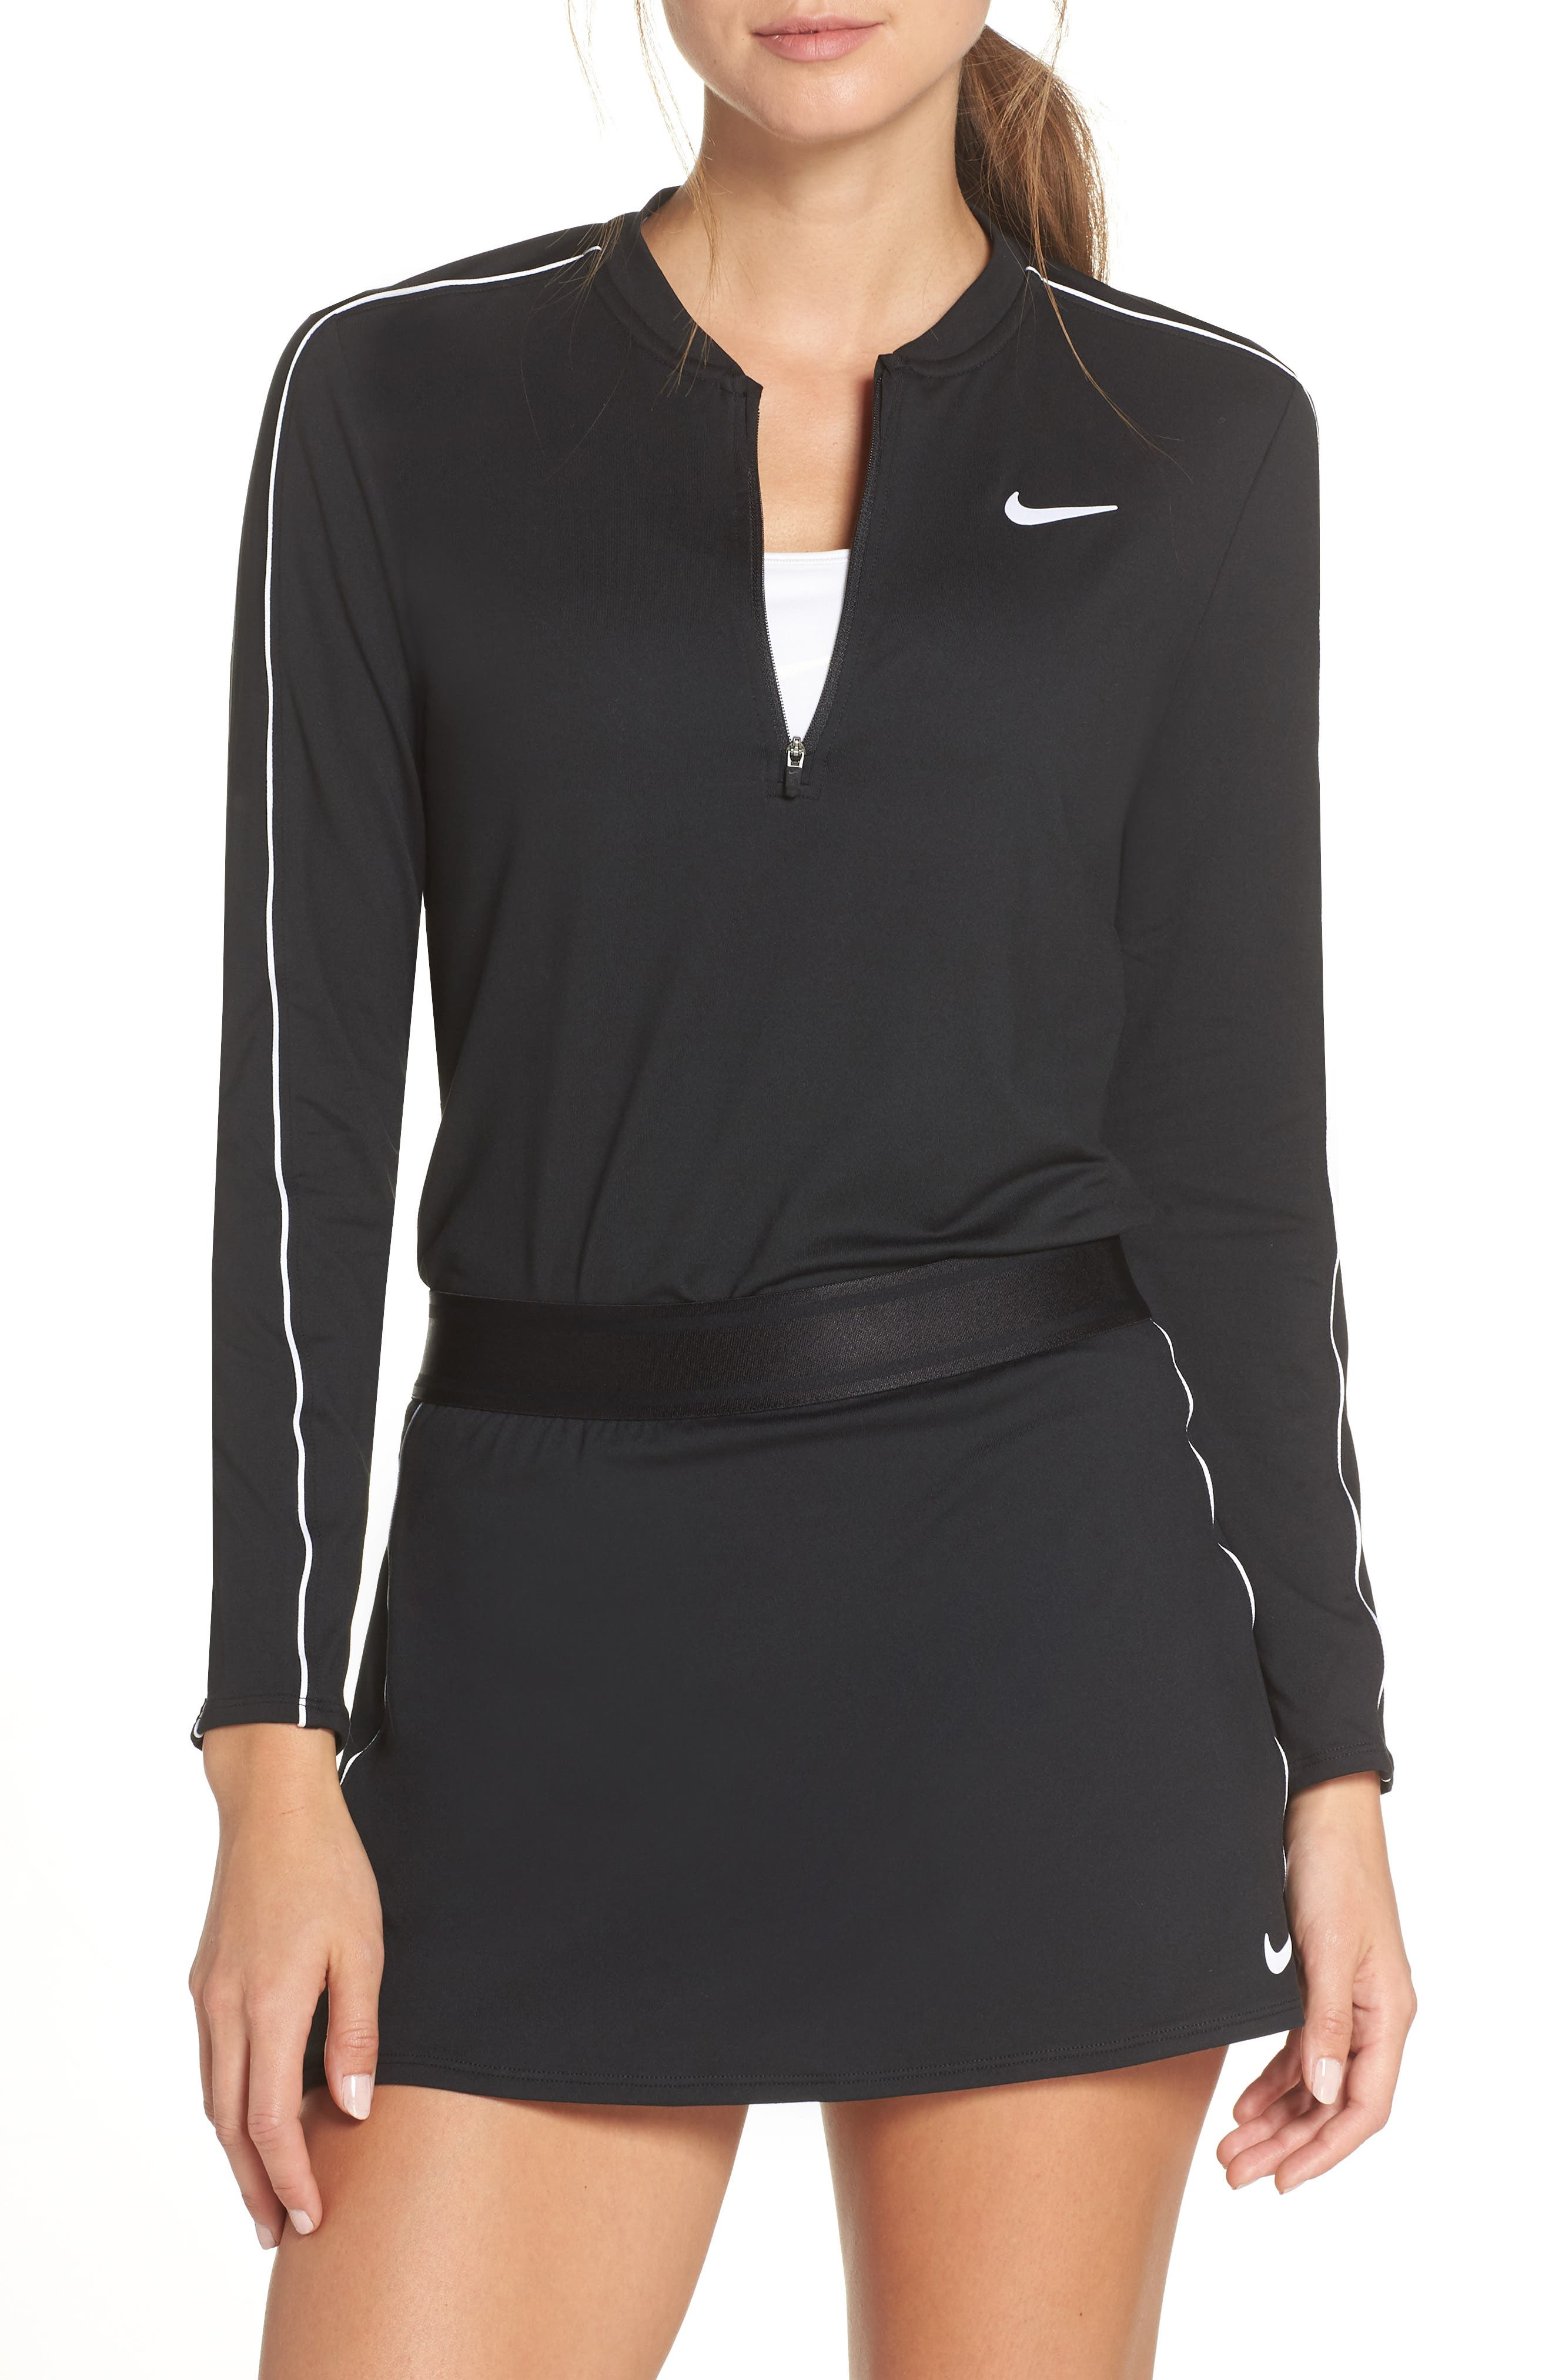 Court Dri-FIT Quarter Zip Top,                         Main,                         color, BLACK/ WHITE/ WHITE/ BLACK